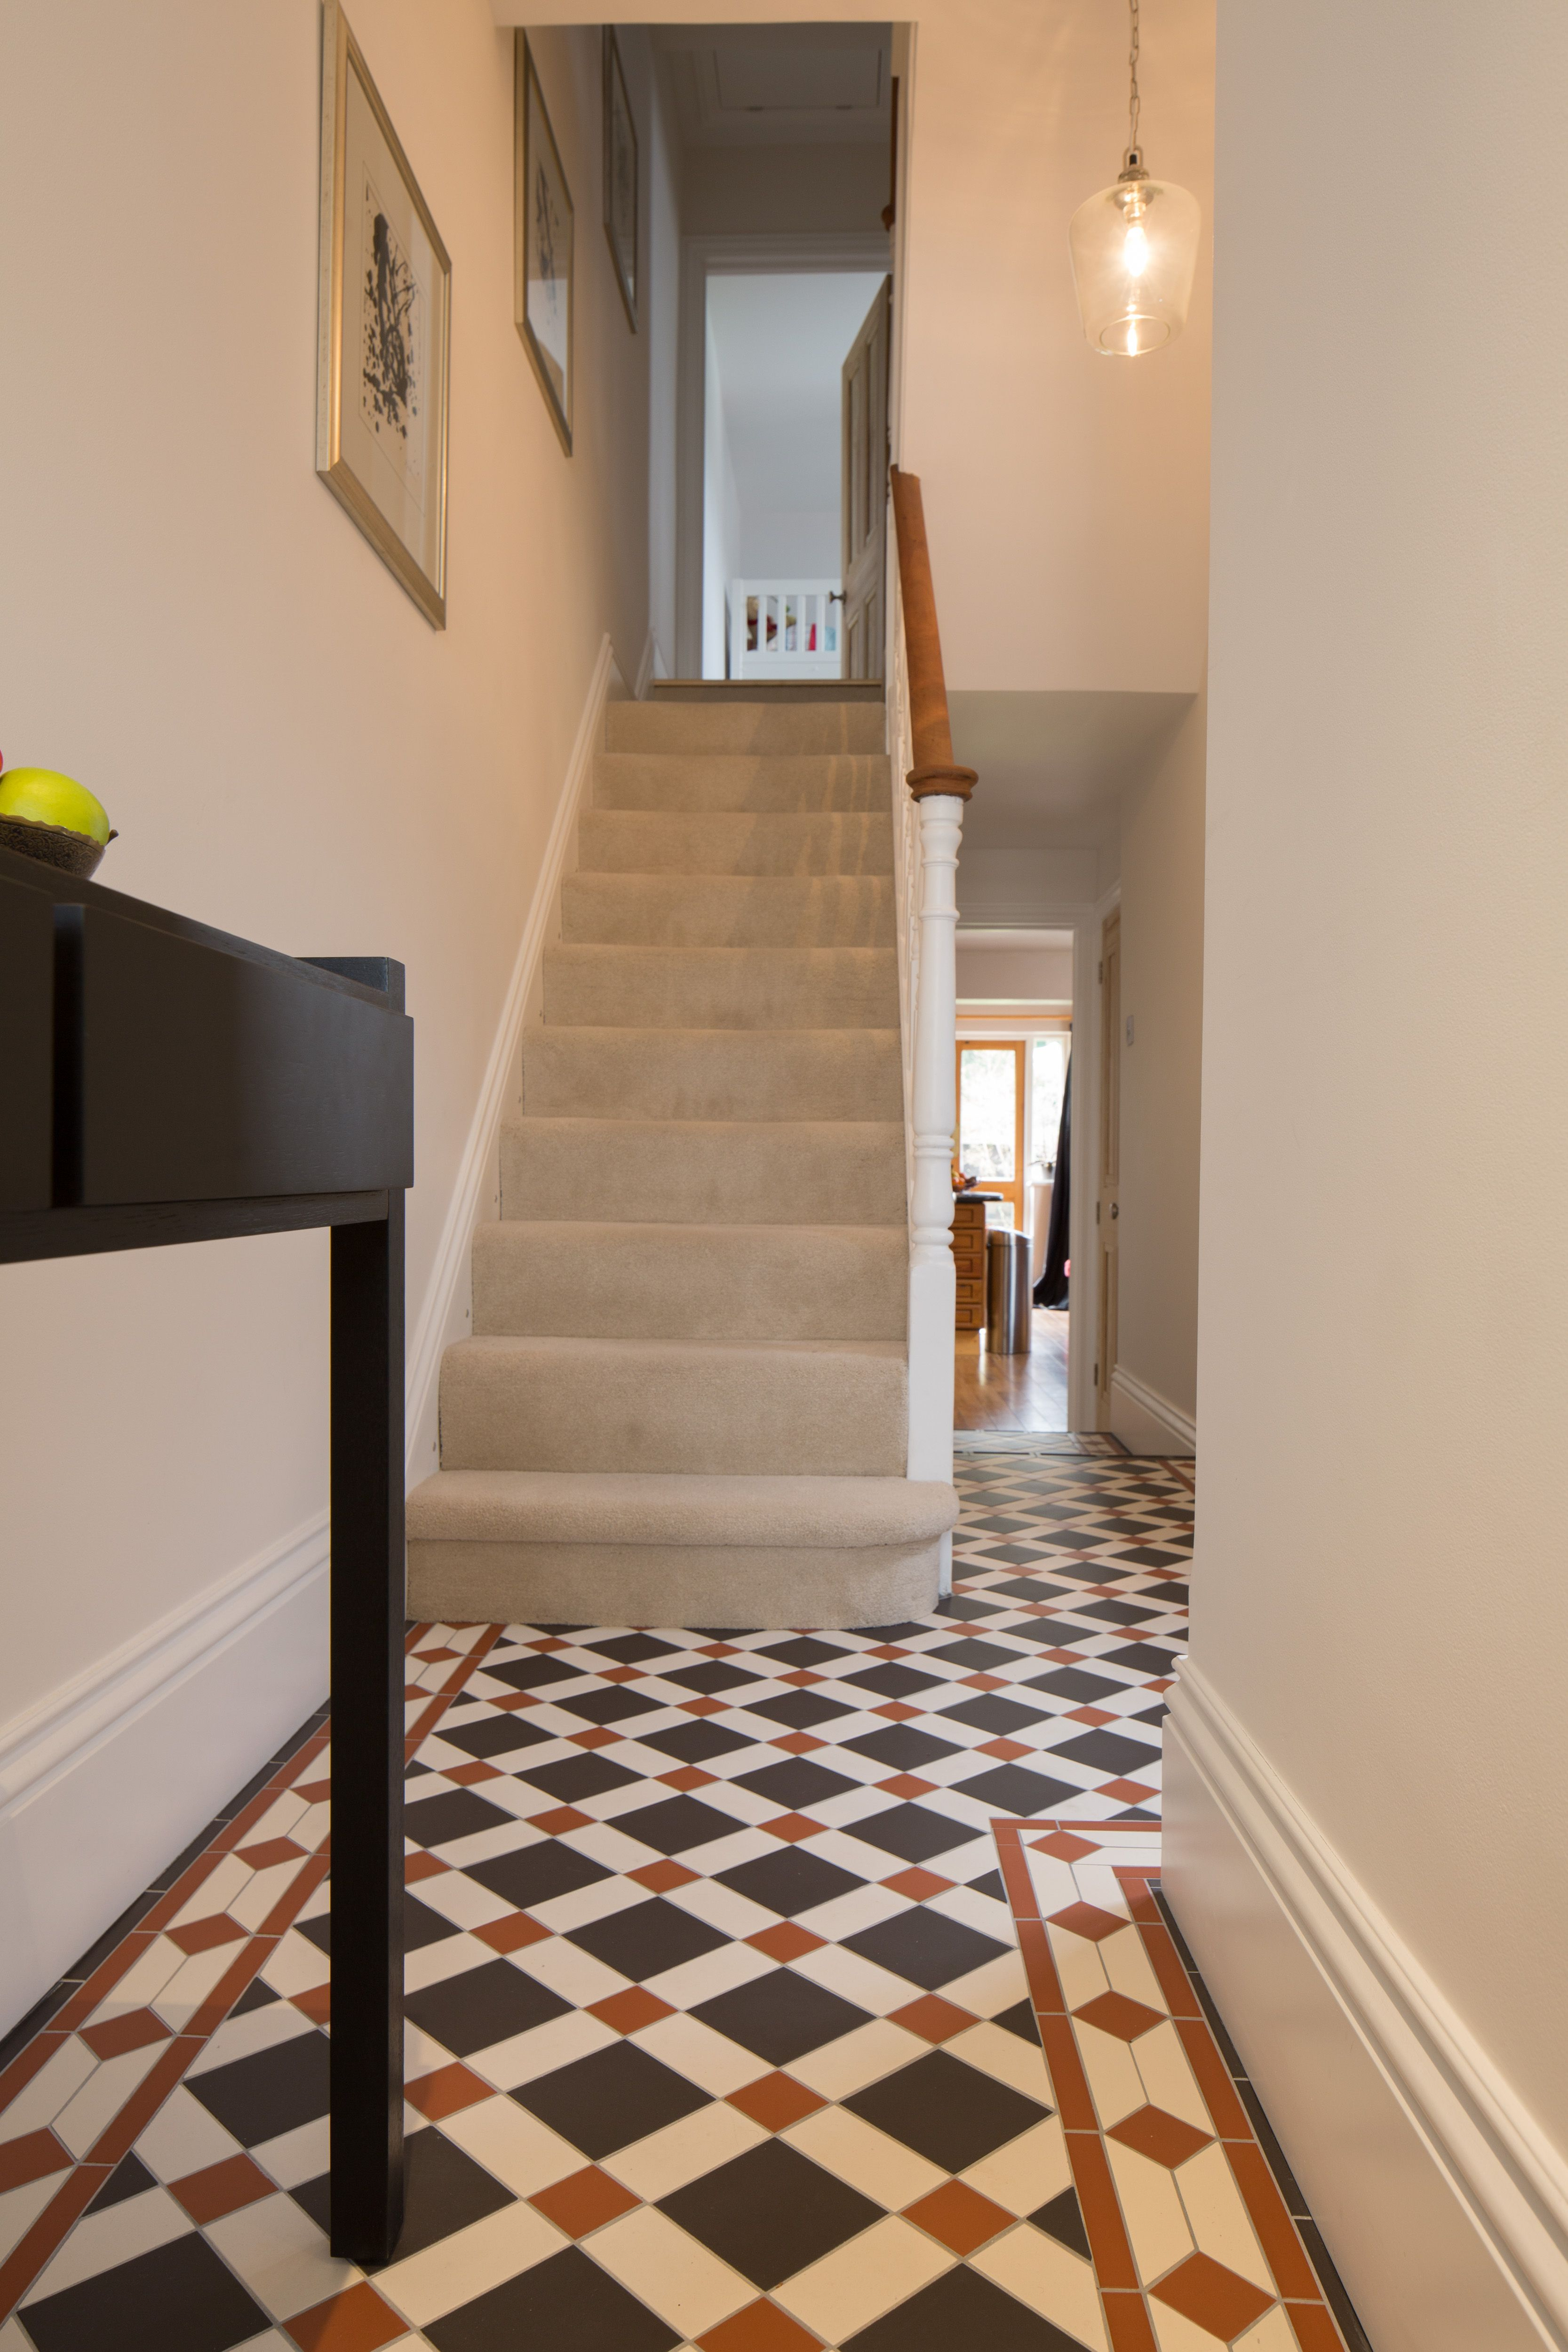 The Falkirk Pattern Victorian Floor Tiles By Original